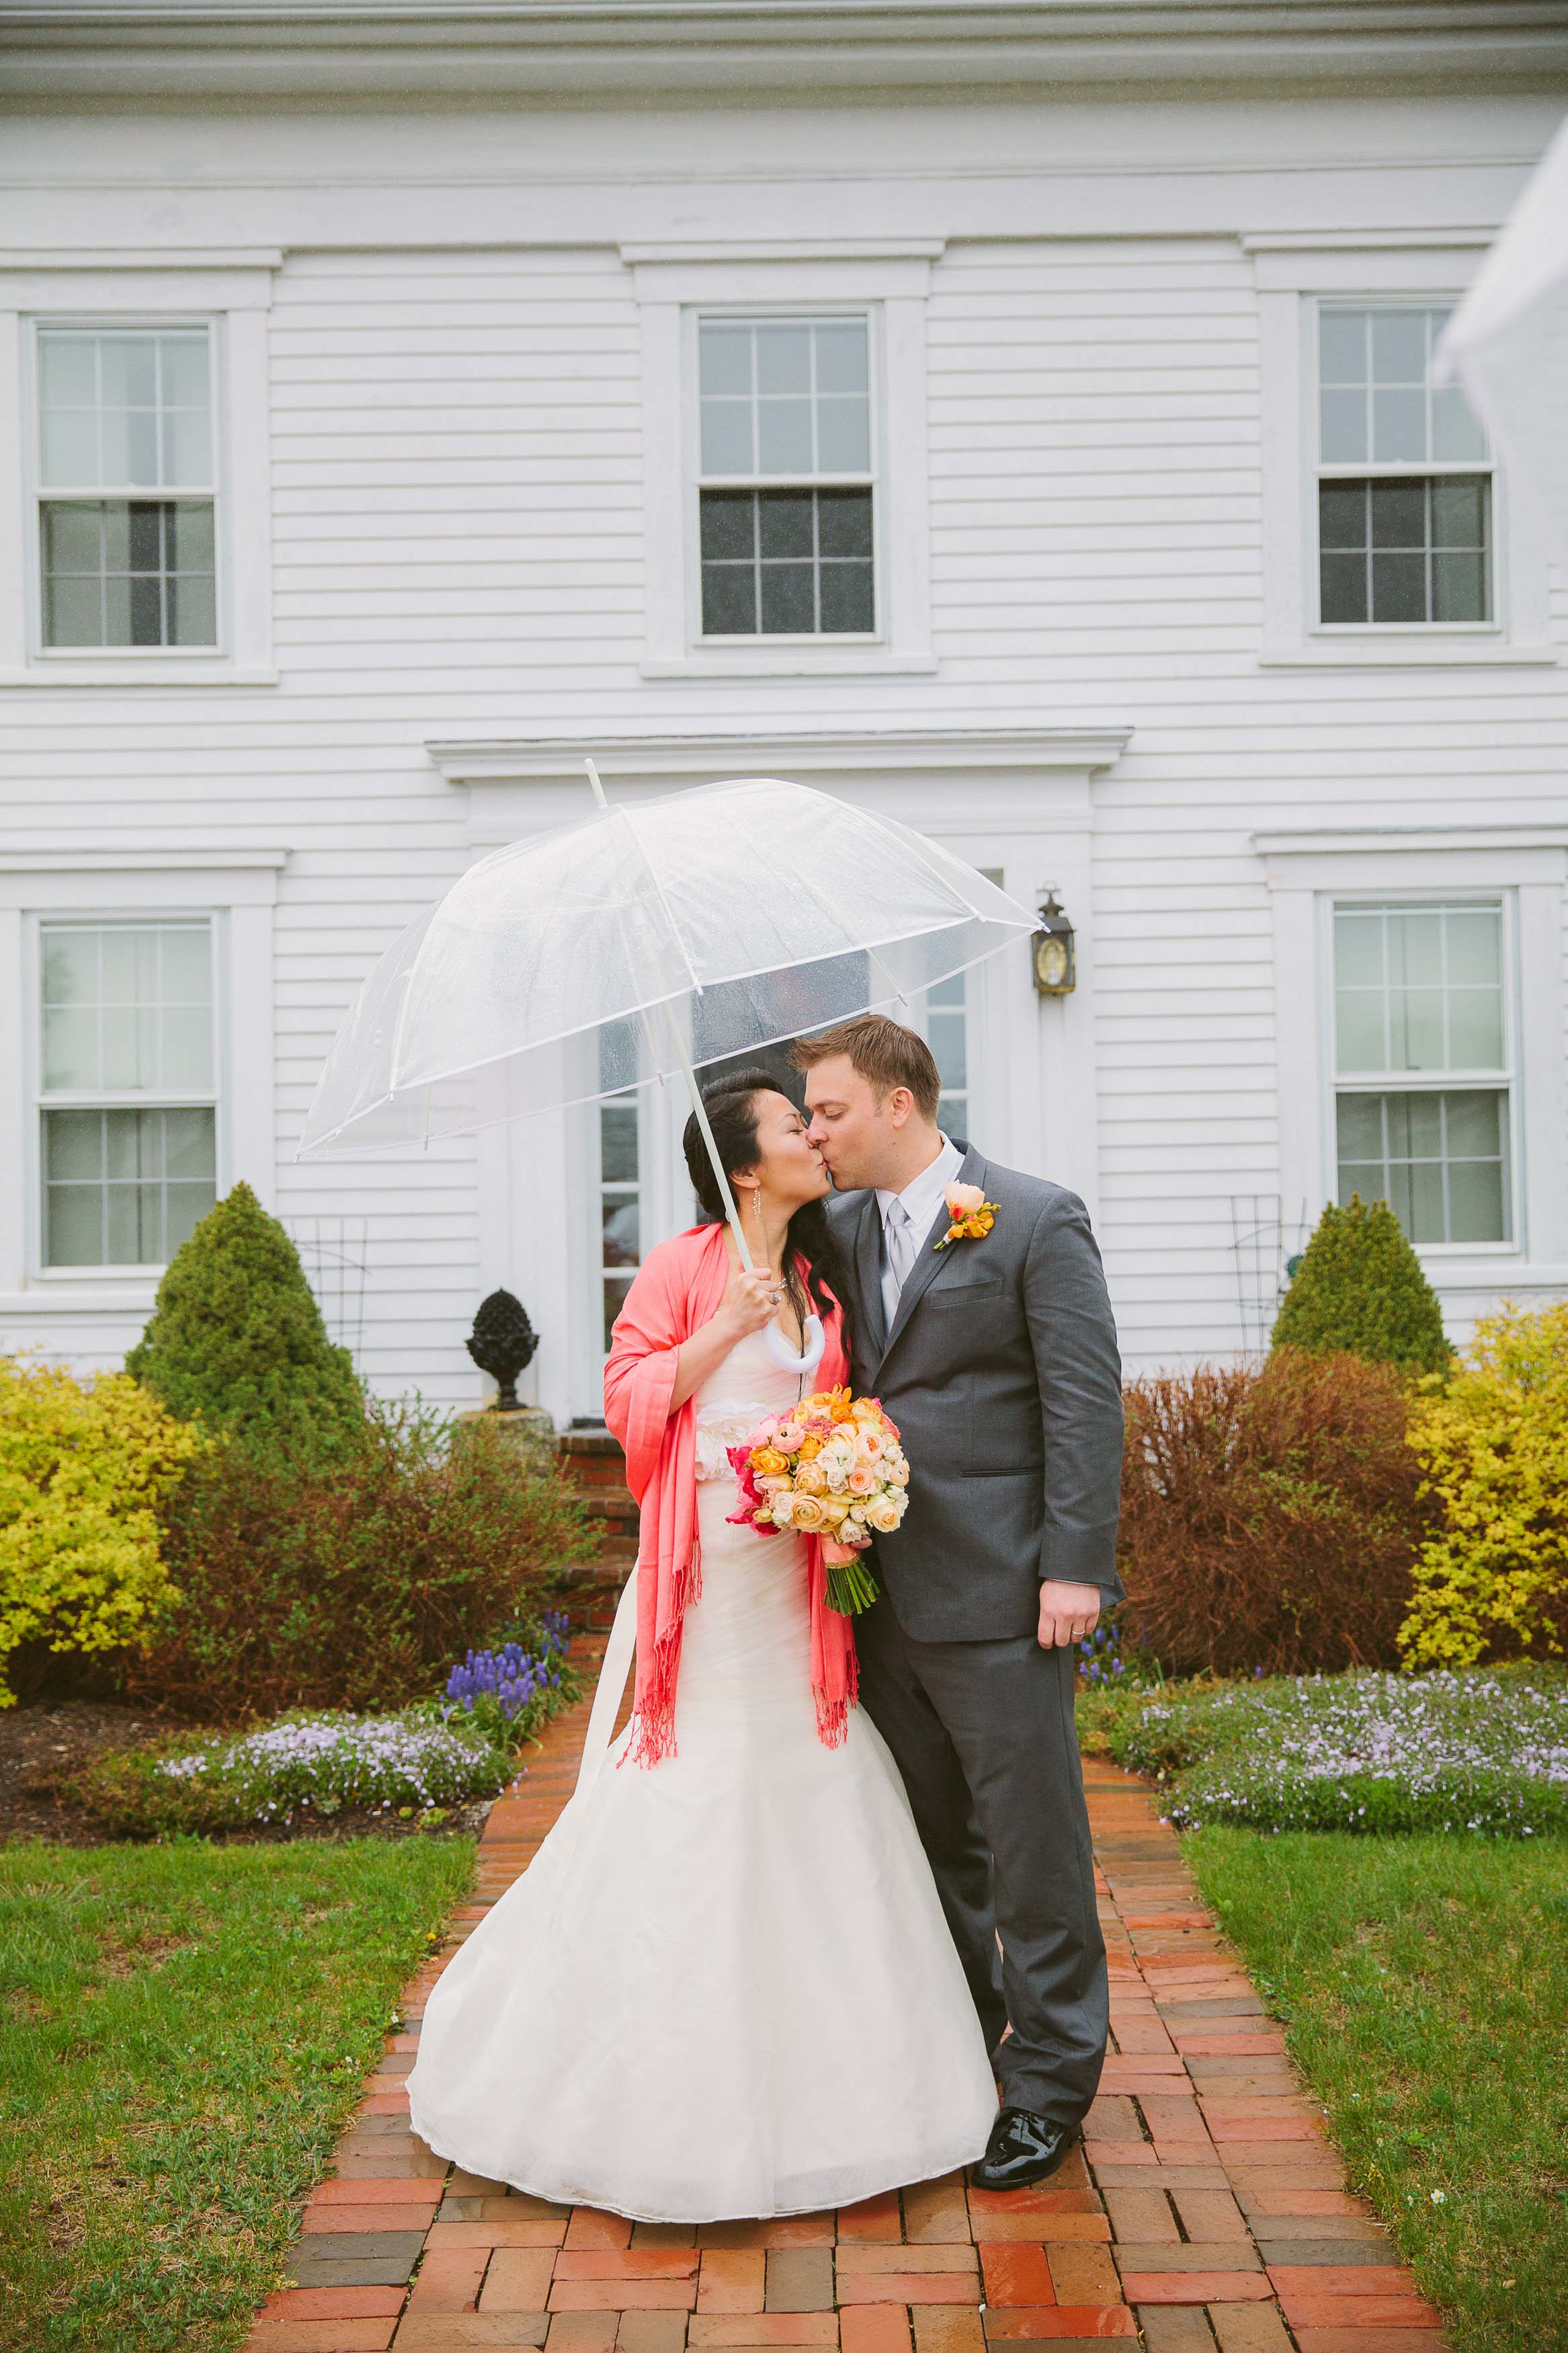 The Best Wedding Rain Plan!